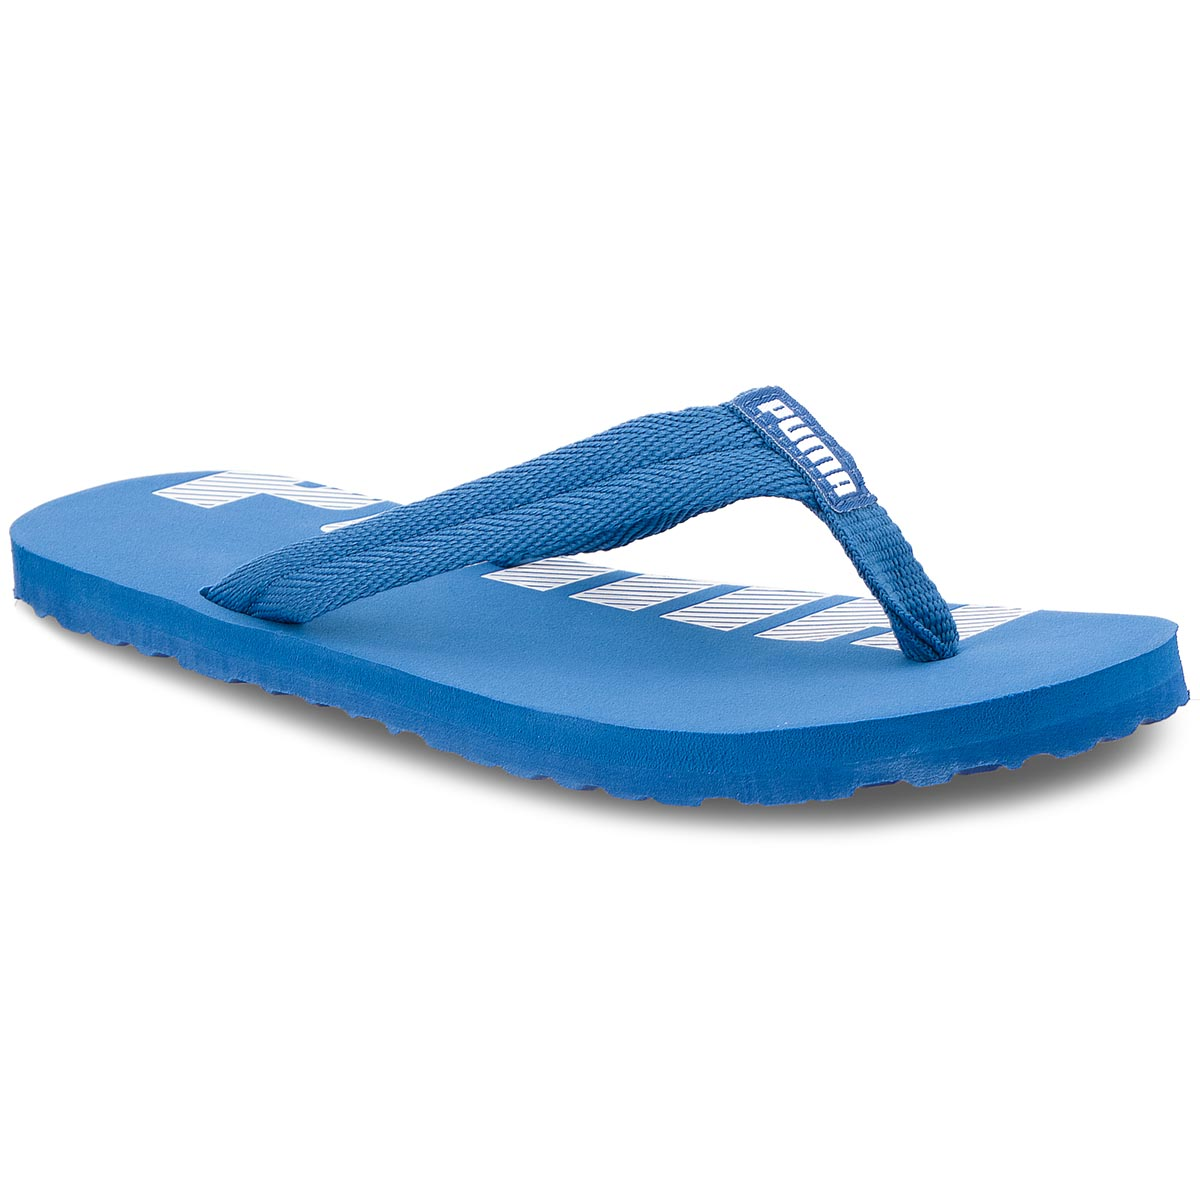 Tongs PUMA - Epic Flip V2 360248 21 Turkish Sea/Puma White